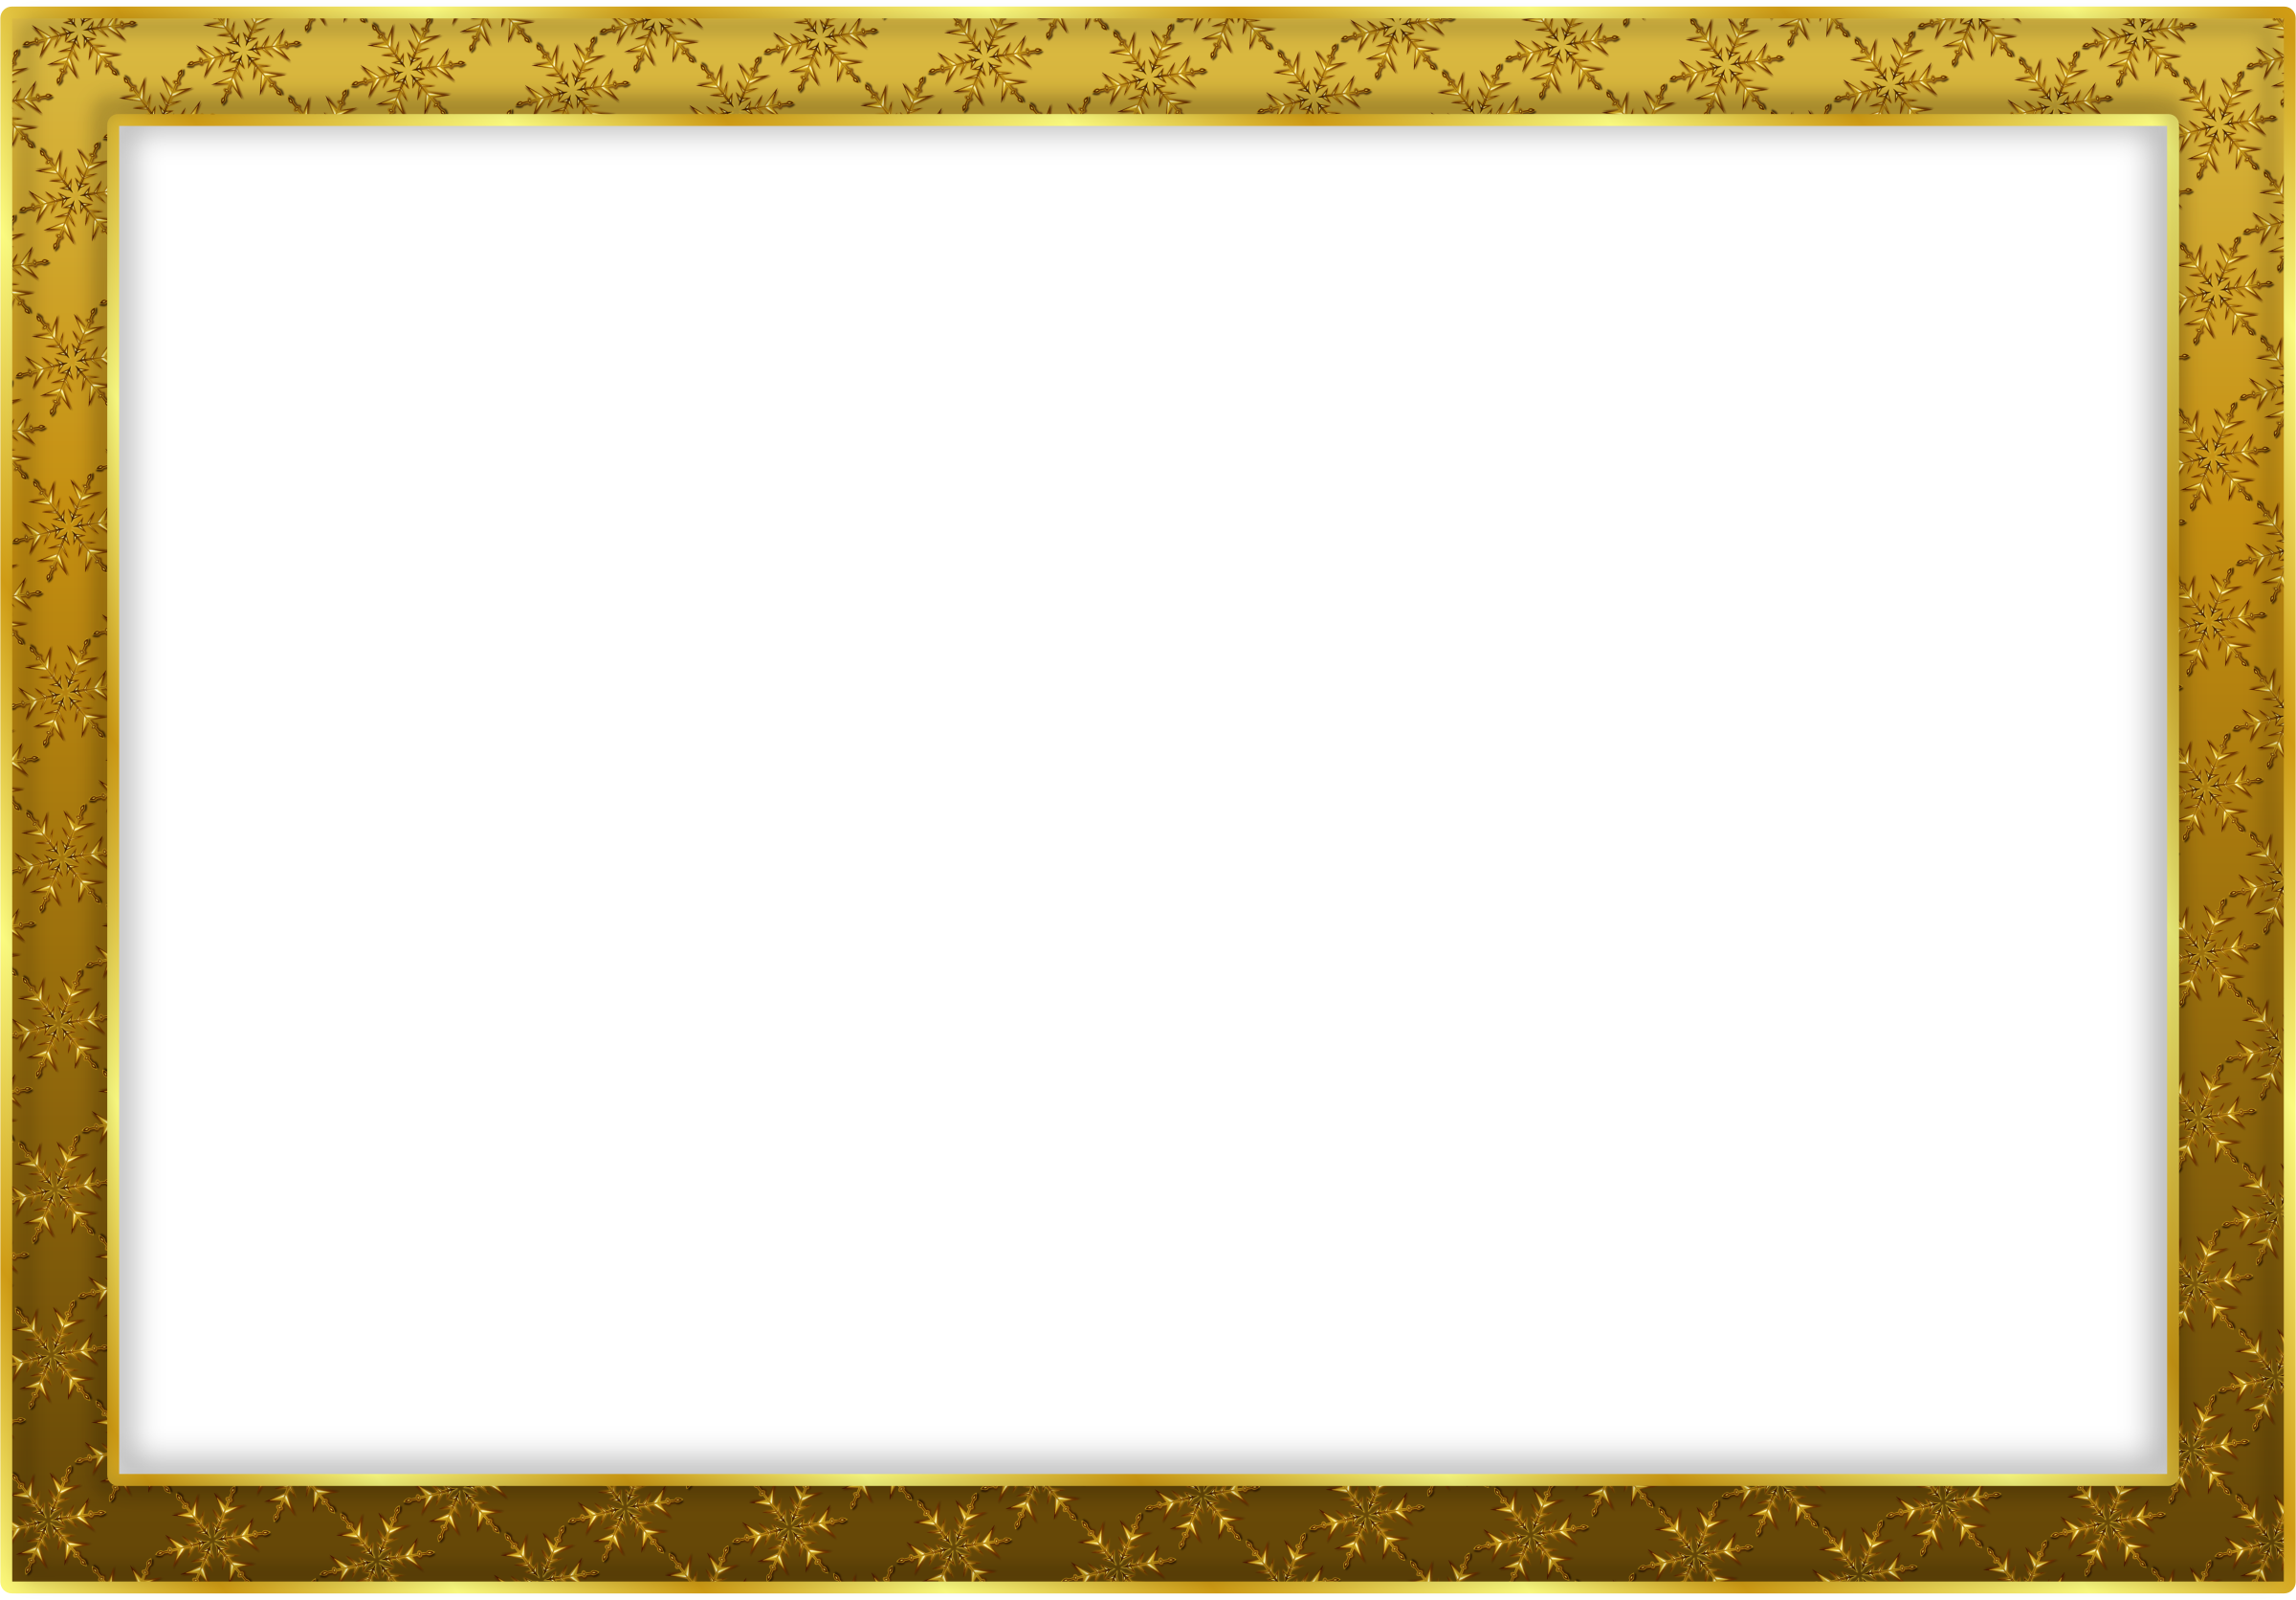 Snowflake frame png. Clipart gold big image